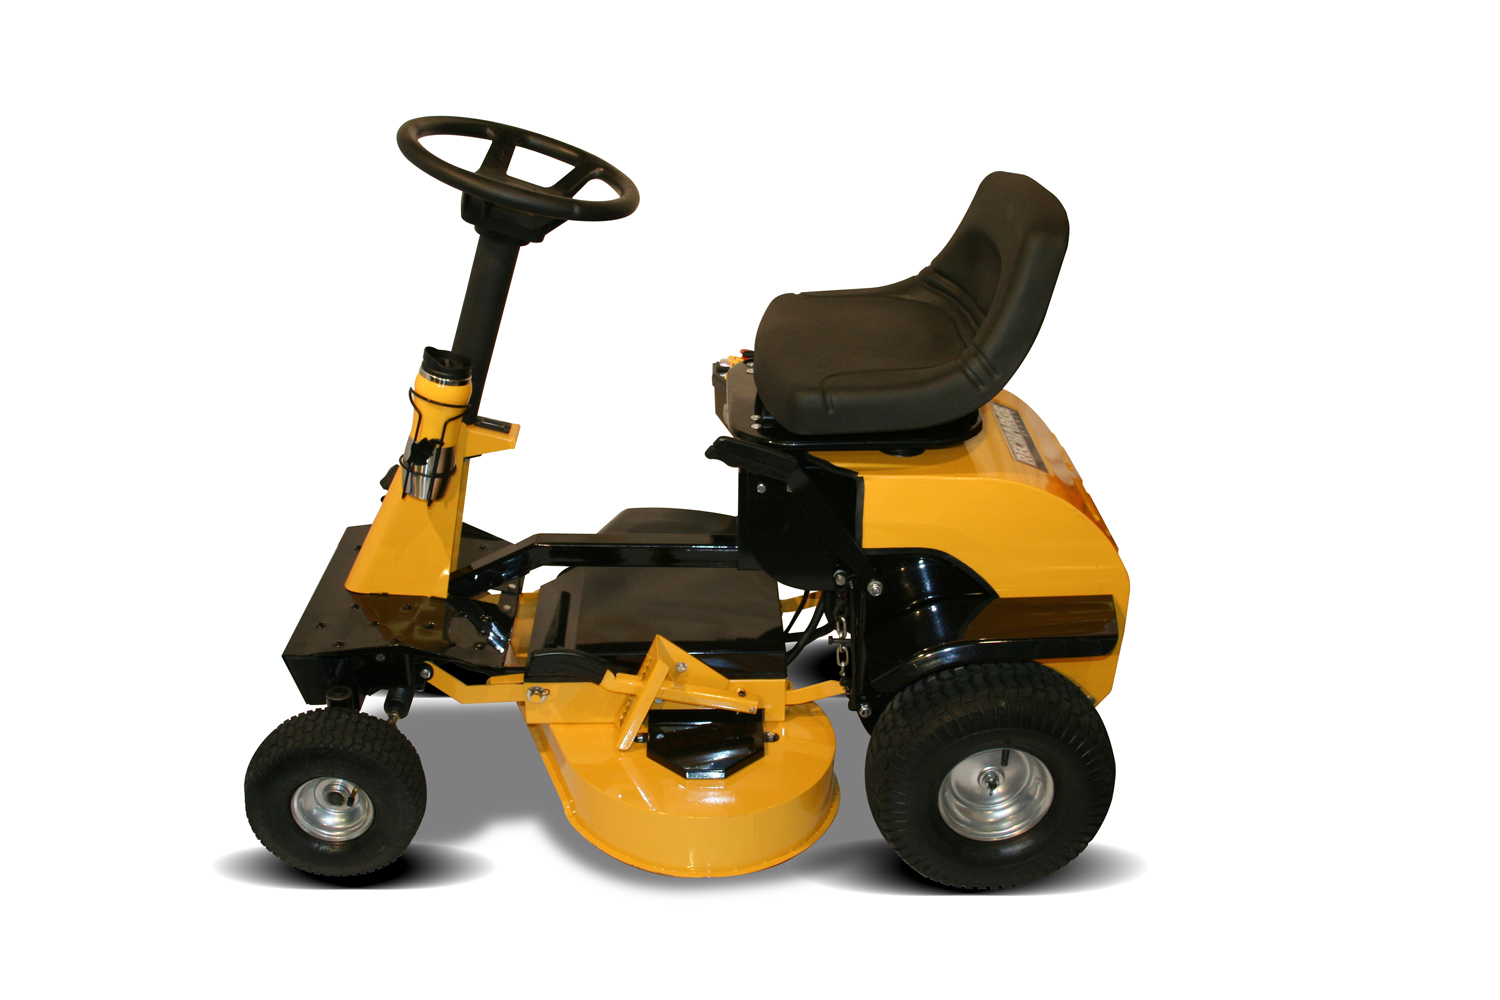 The New Recharge Mower G2 Is Now On The Floor At Lowes Canada